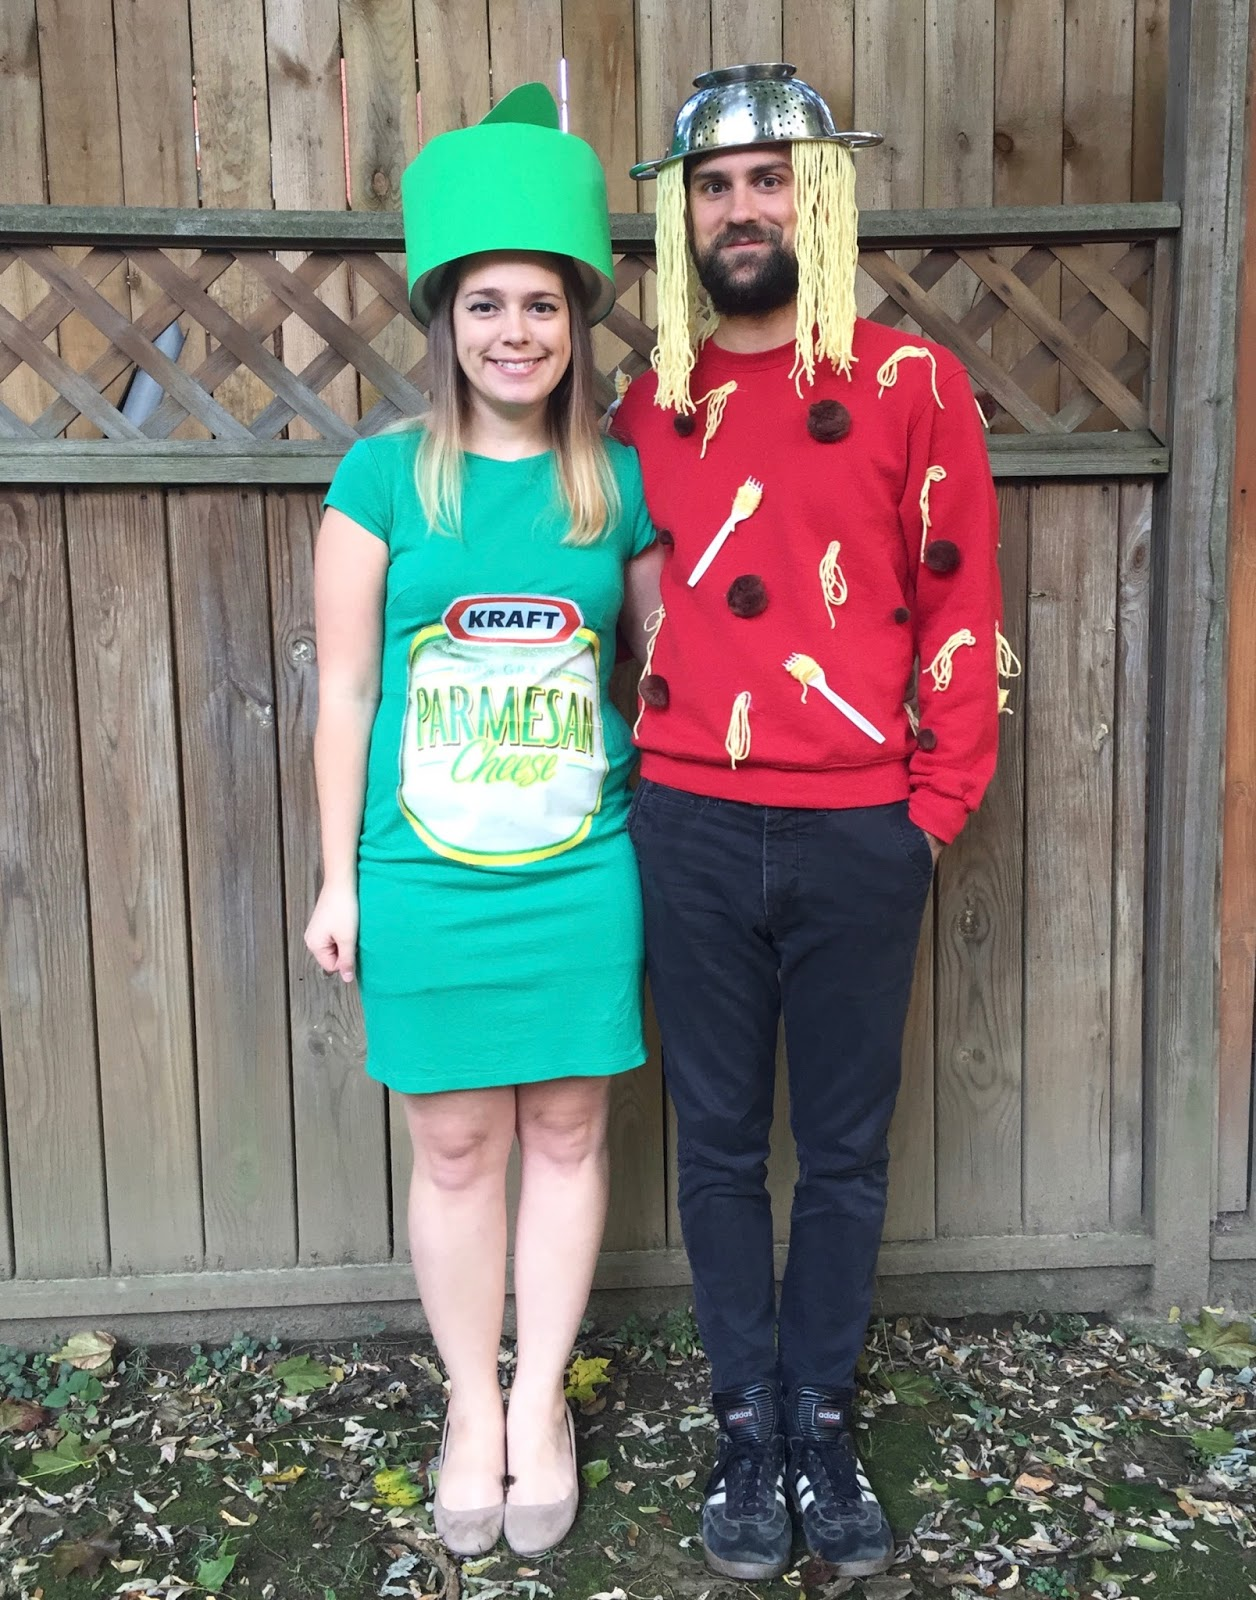 Our Halloween Costumes Spaghetti \u0026 Parmesan Cheese , The